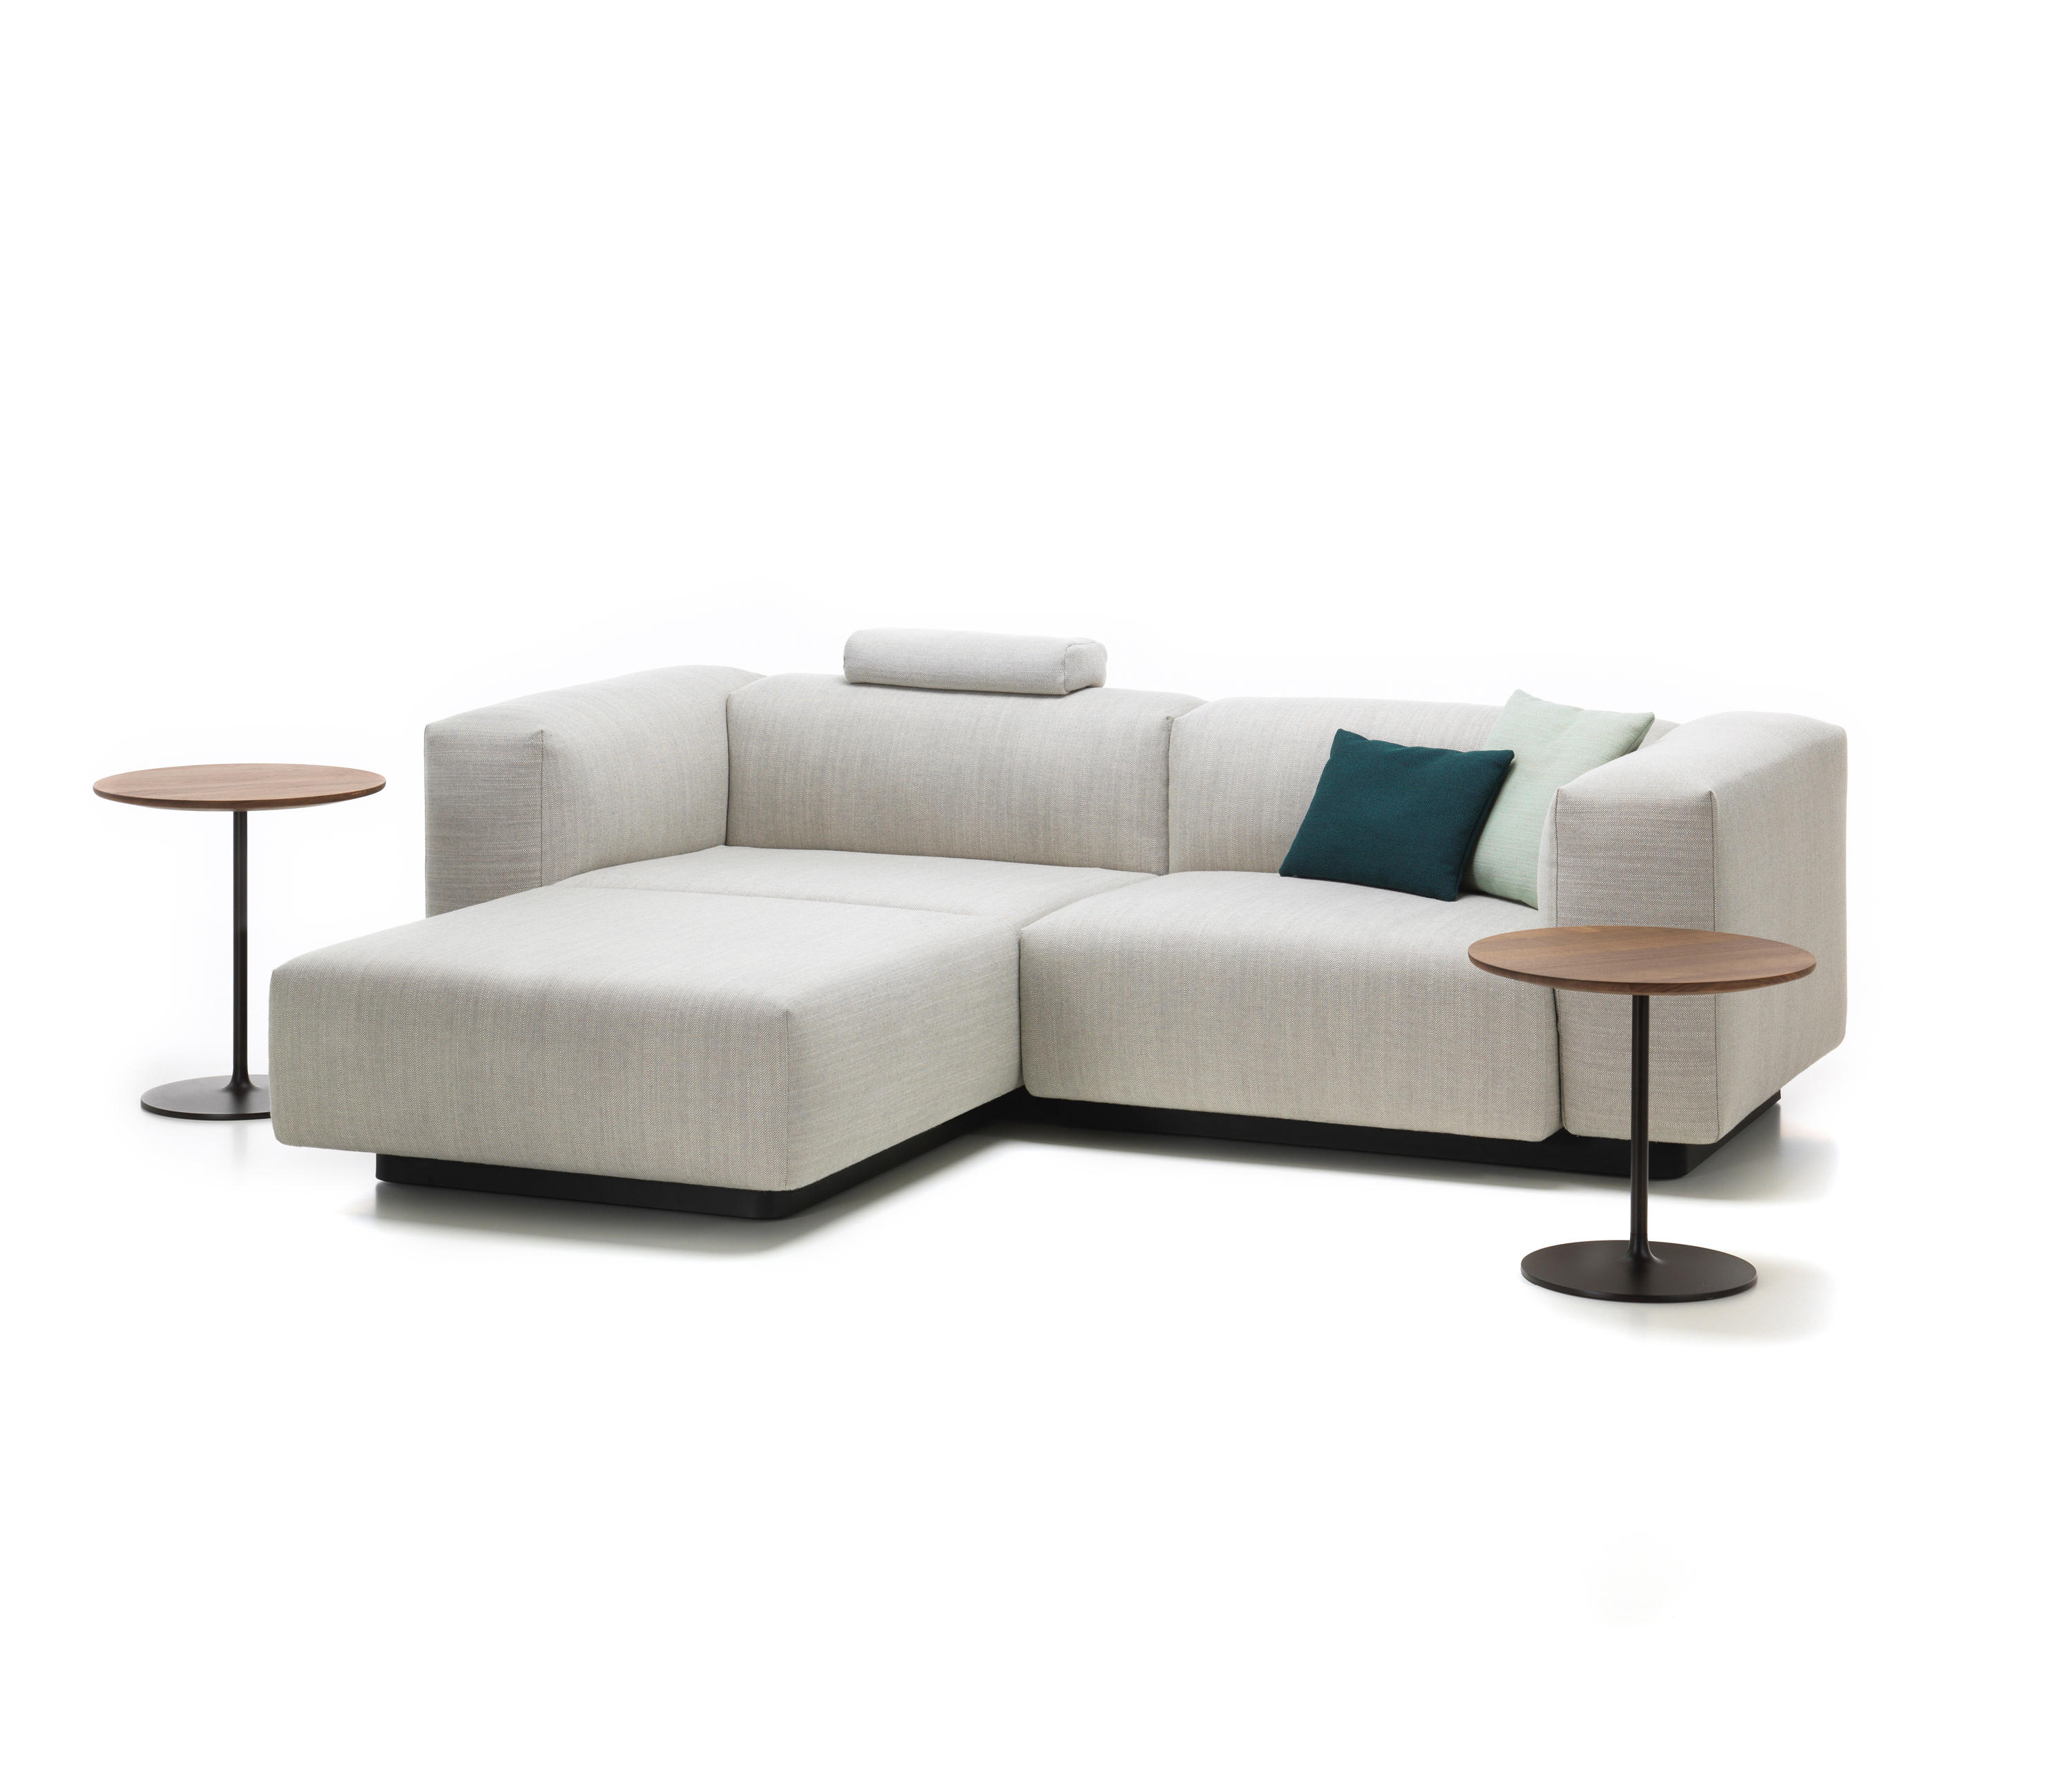 Soft modular sofa 2 seater chaise longue sofas from for 2 seater chaise sofa